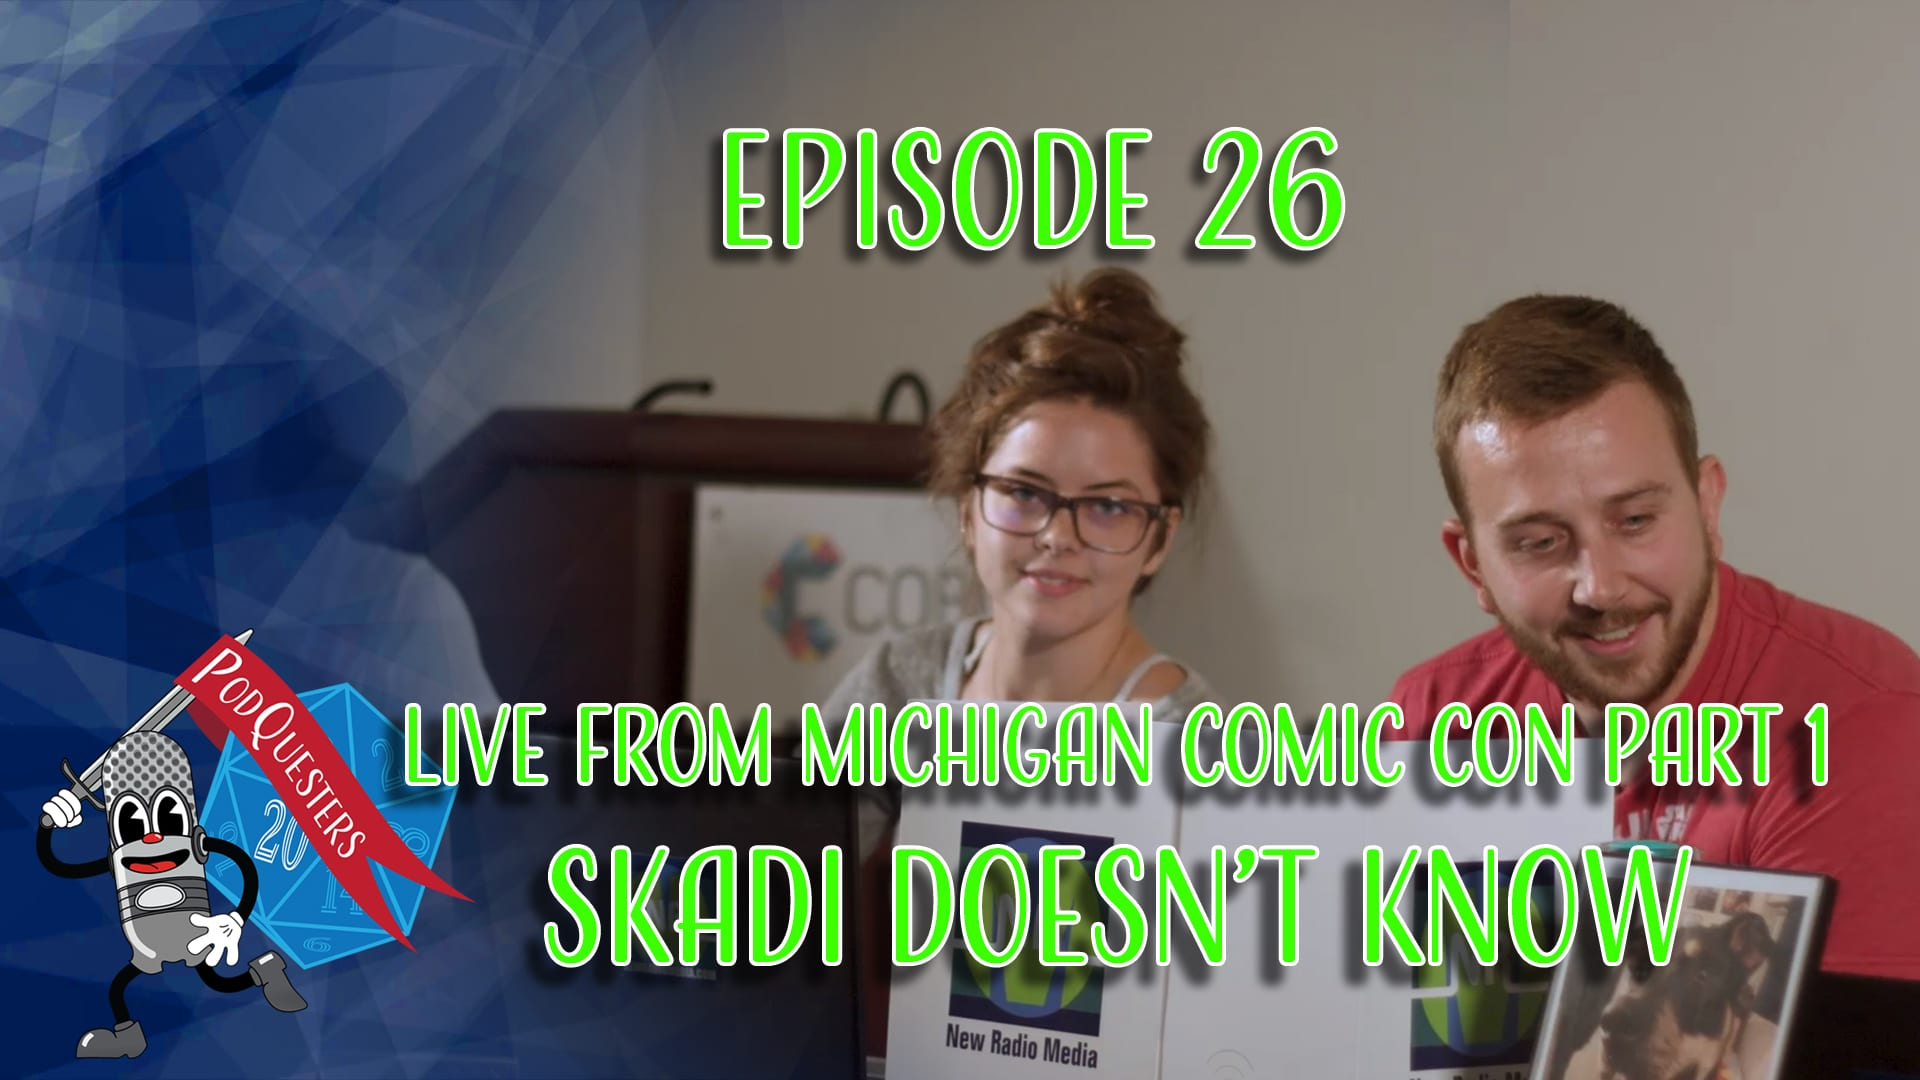 Podquesters - Episode 26: Live From Michigan Comic Con Part 1 - Skadi Doesn